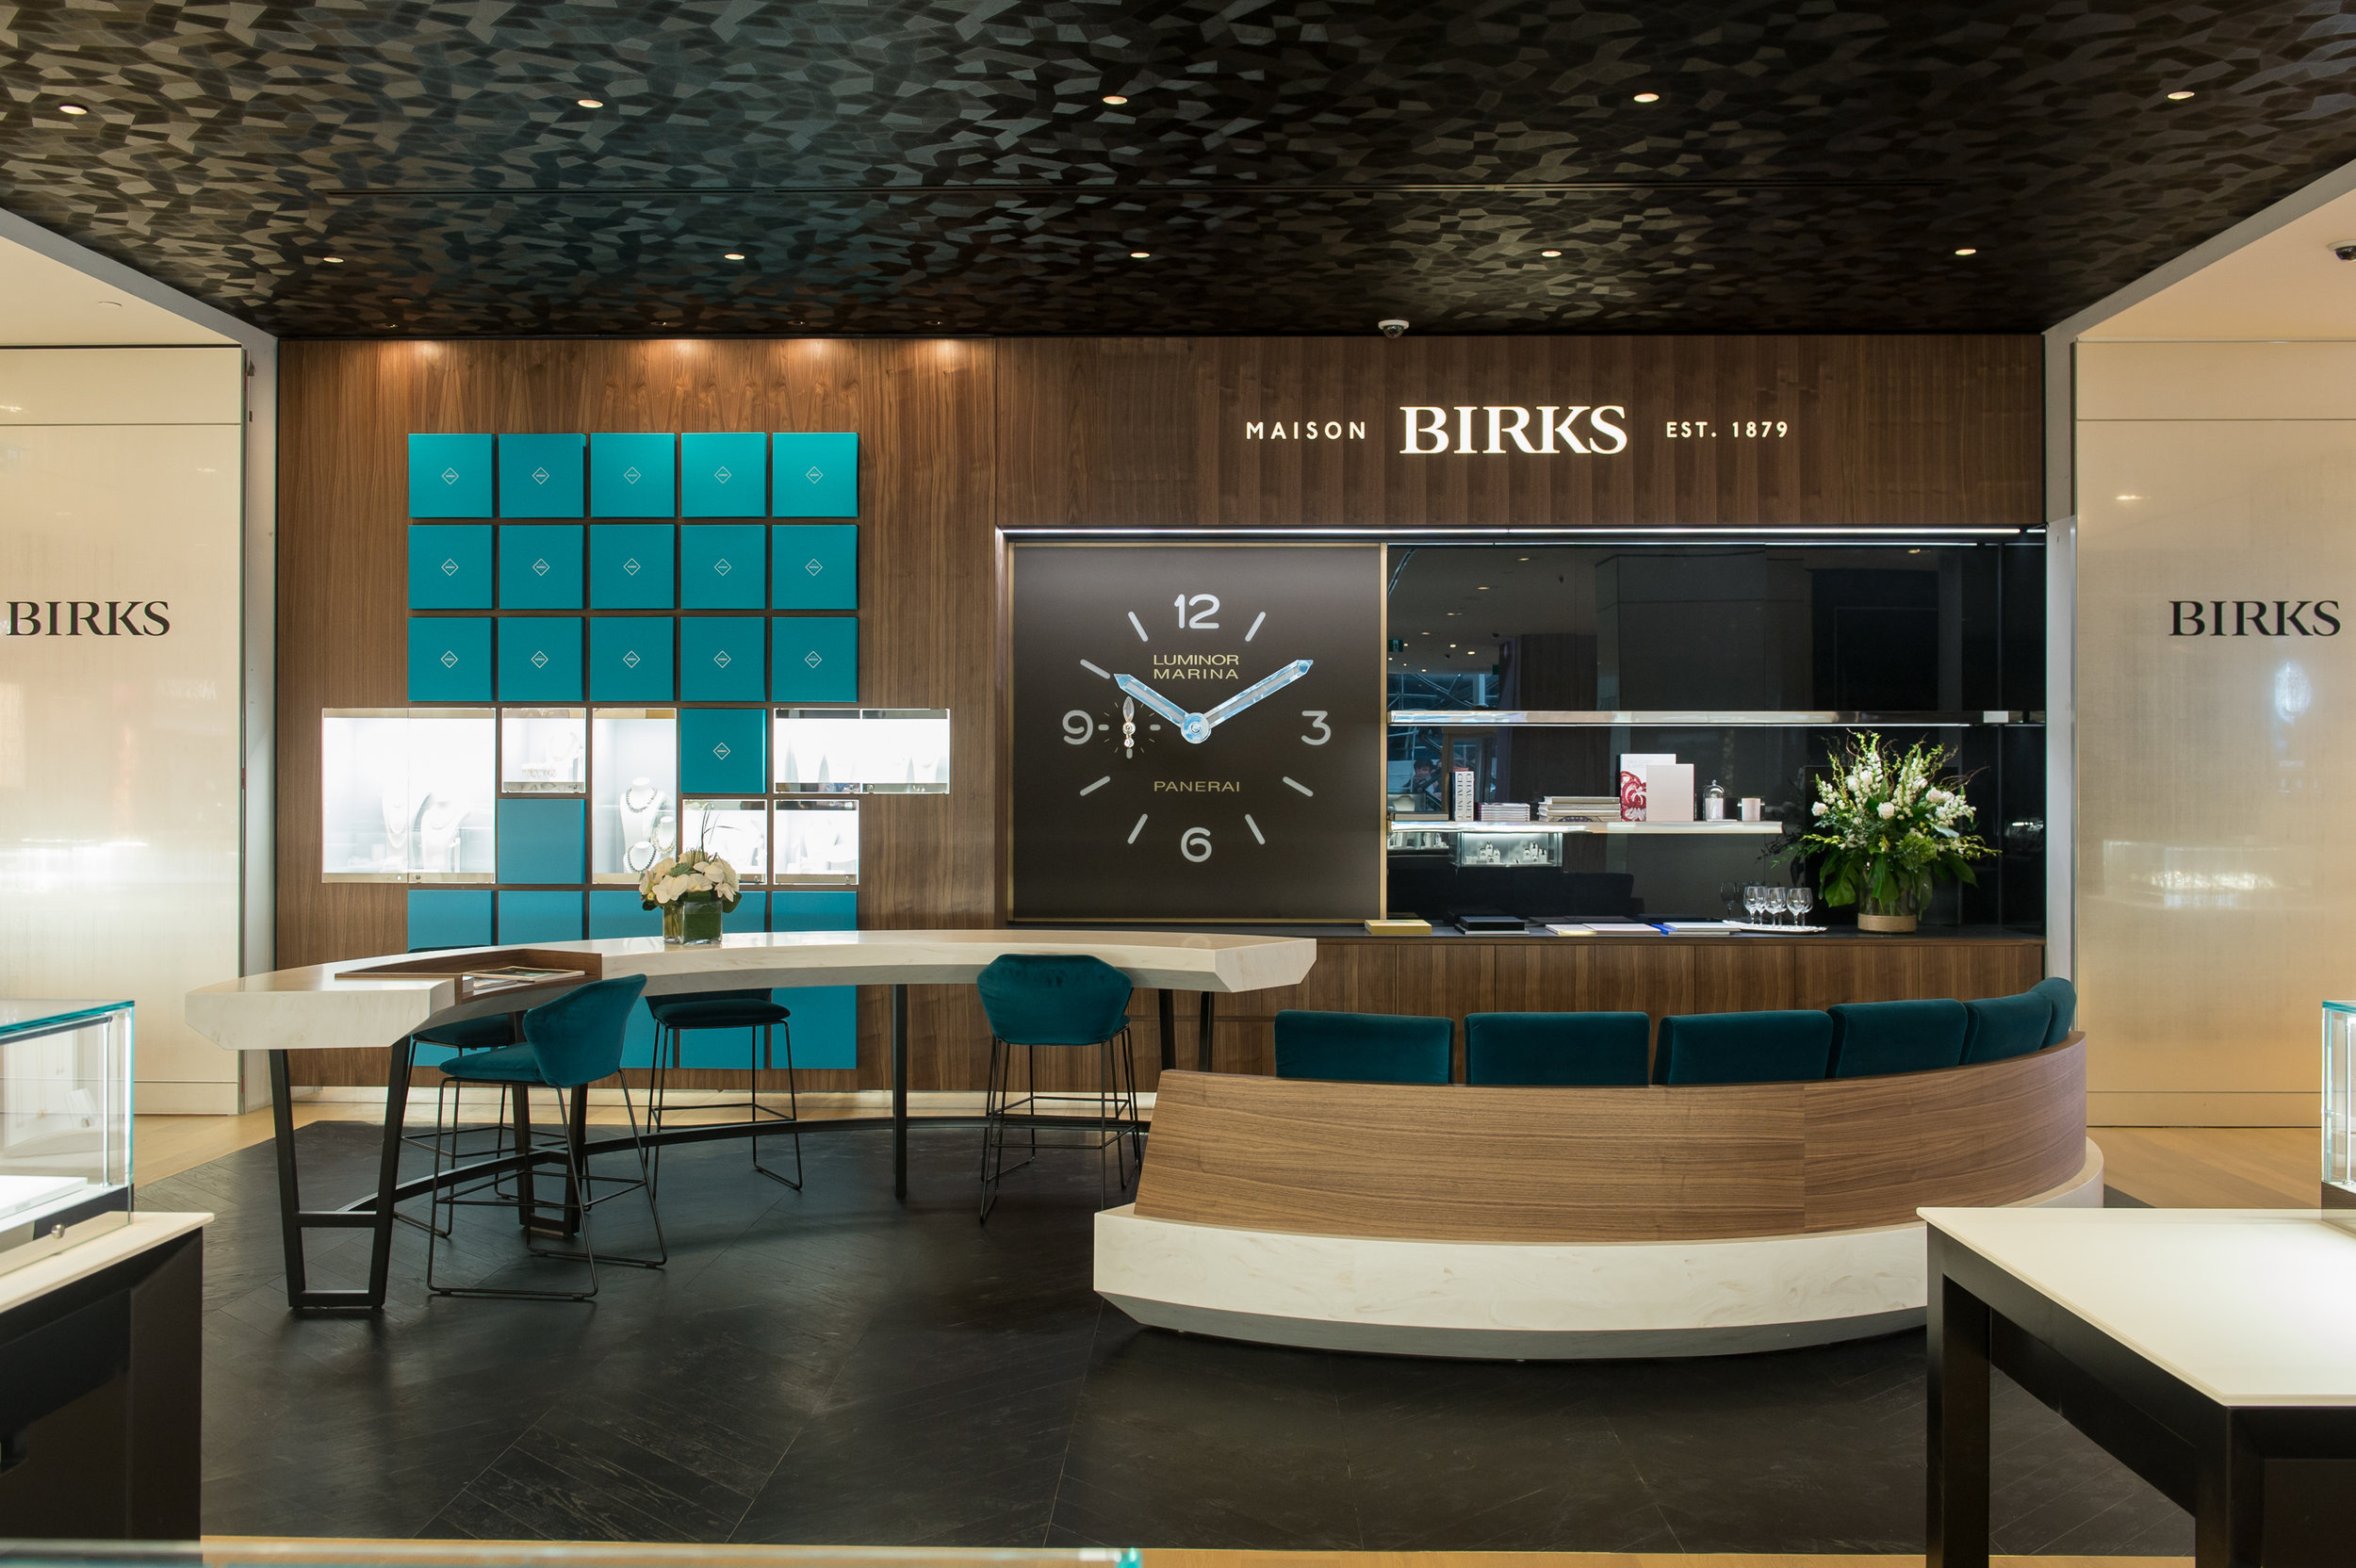 Lounge and service area, with seating and an espresso machine. PHOTO: MAISON BIRKS